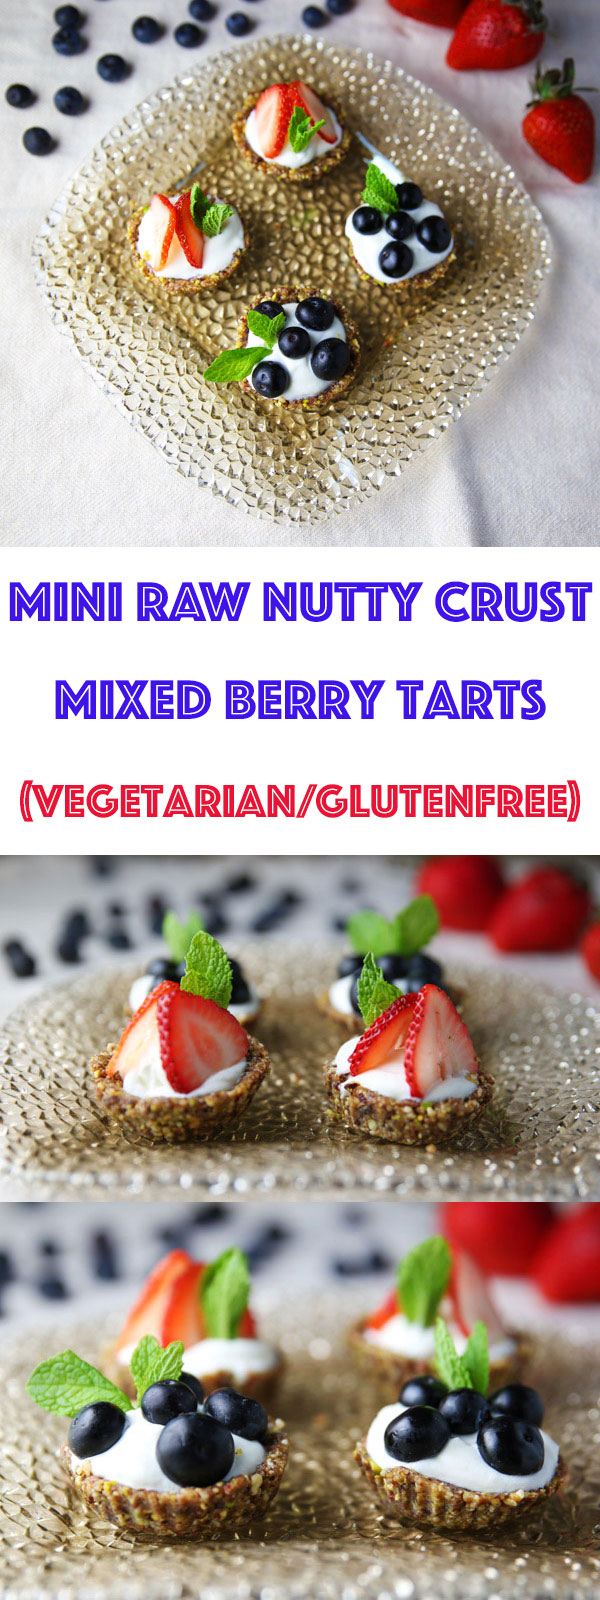 These Mini Raw Nutty Crust Mixed Berry Tarts are super easy to make, made with simple healthy ingredients, and are so scrumptious! (Vegetarian/Gluten Free)